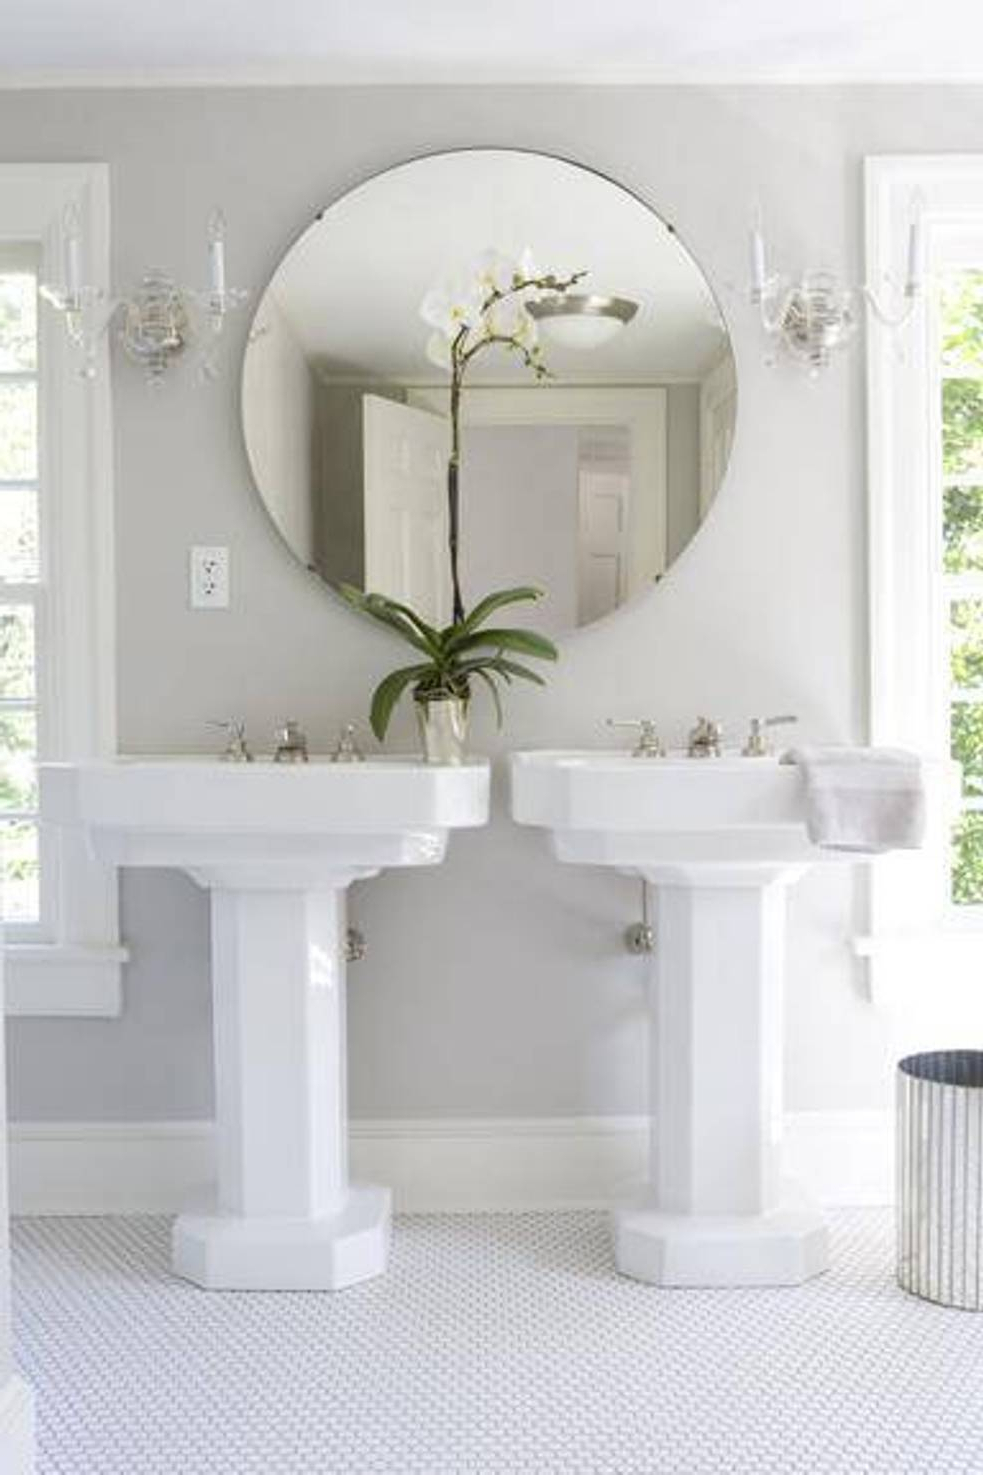 Widely Used Large Wall Mirror Without Frame Within Large Round Mirror Without Frame – Mirror Decorating Ideas (View 15 of 20)